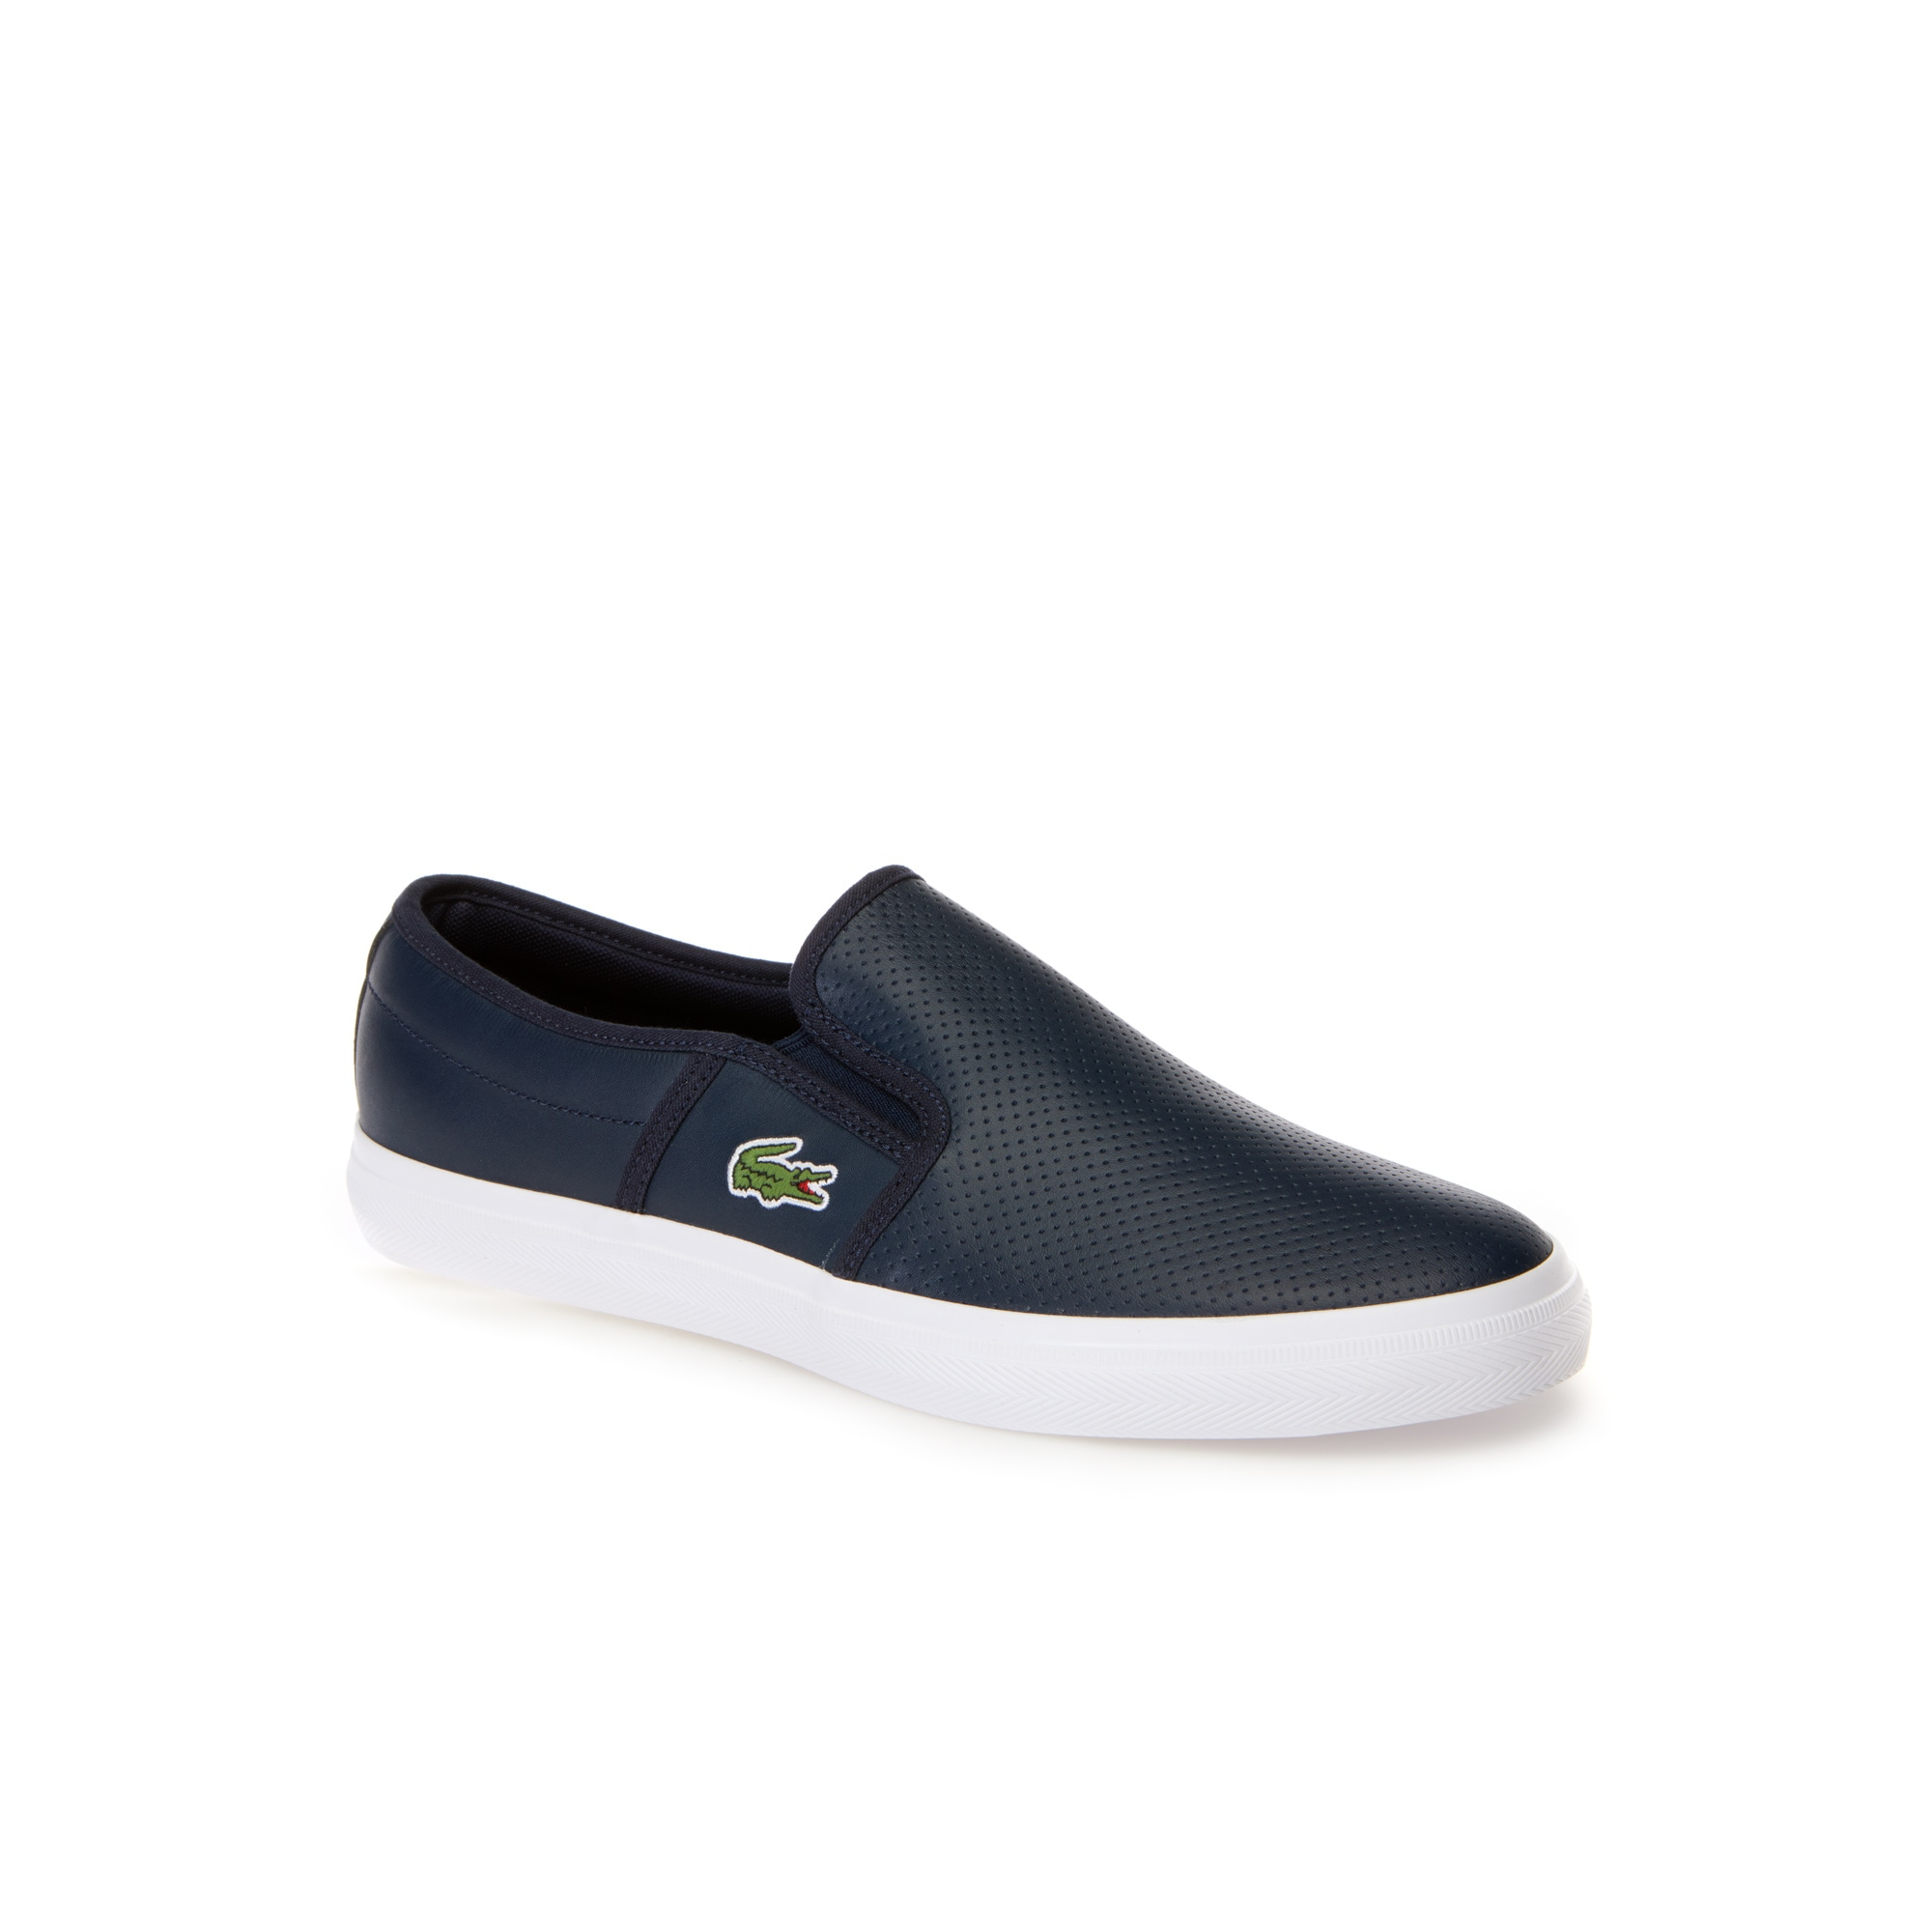 Slip-on Gazon en cuir uni